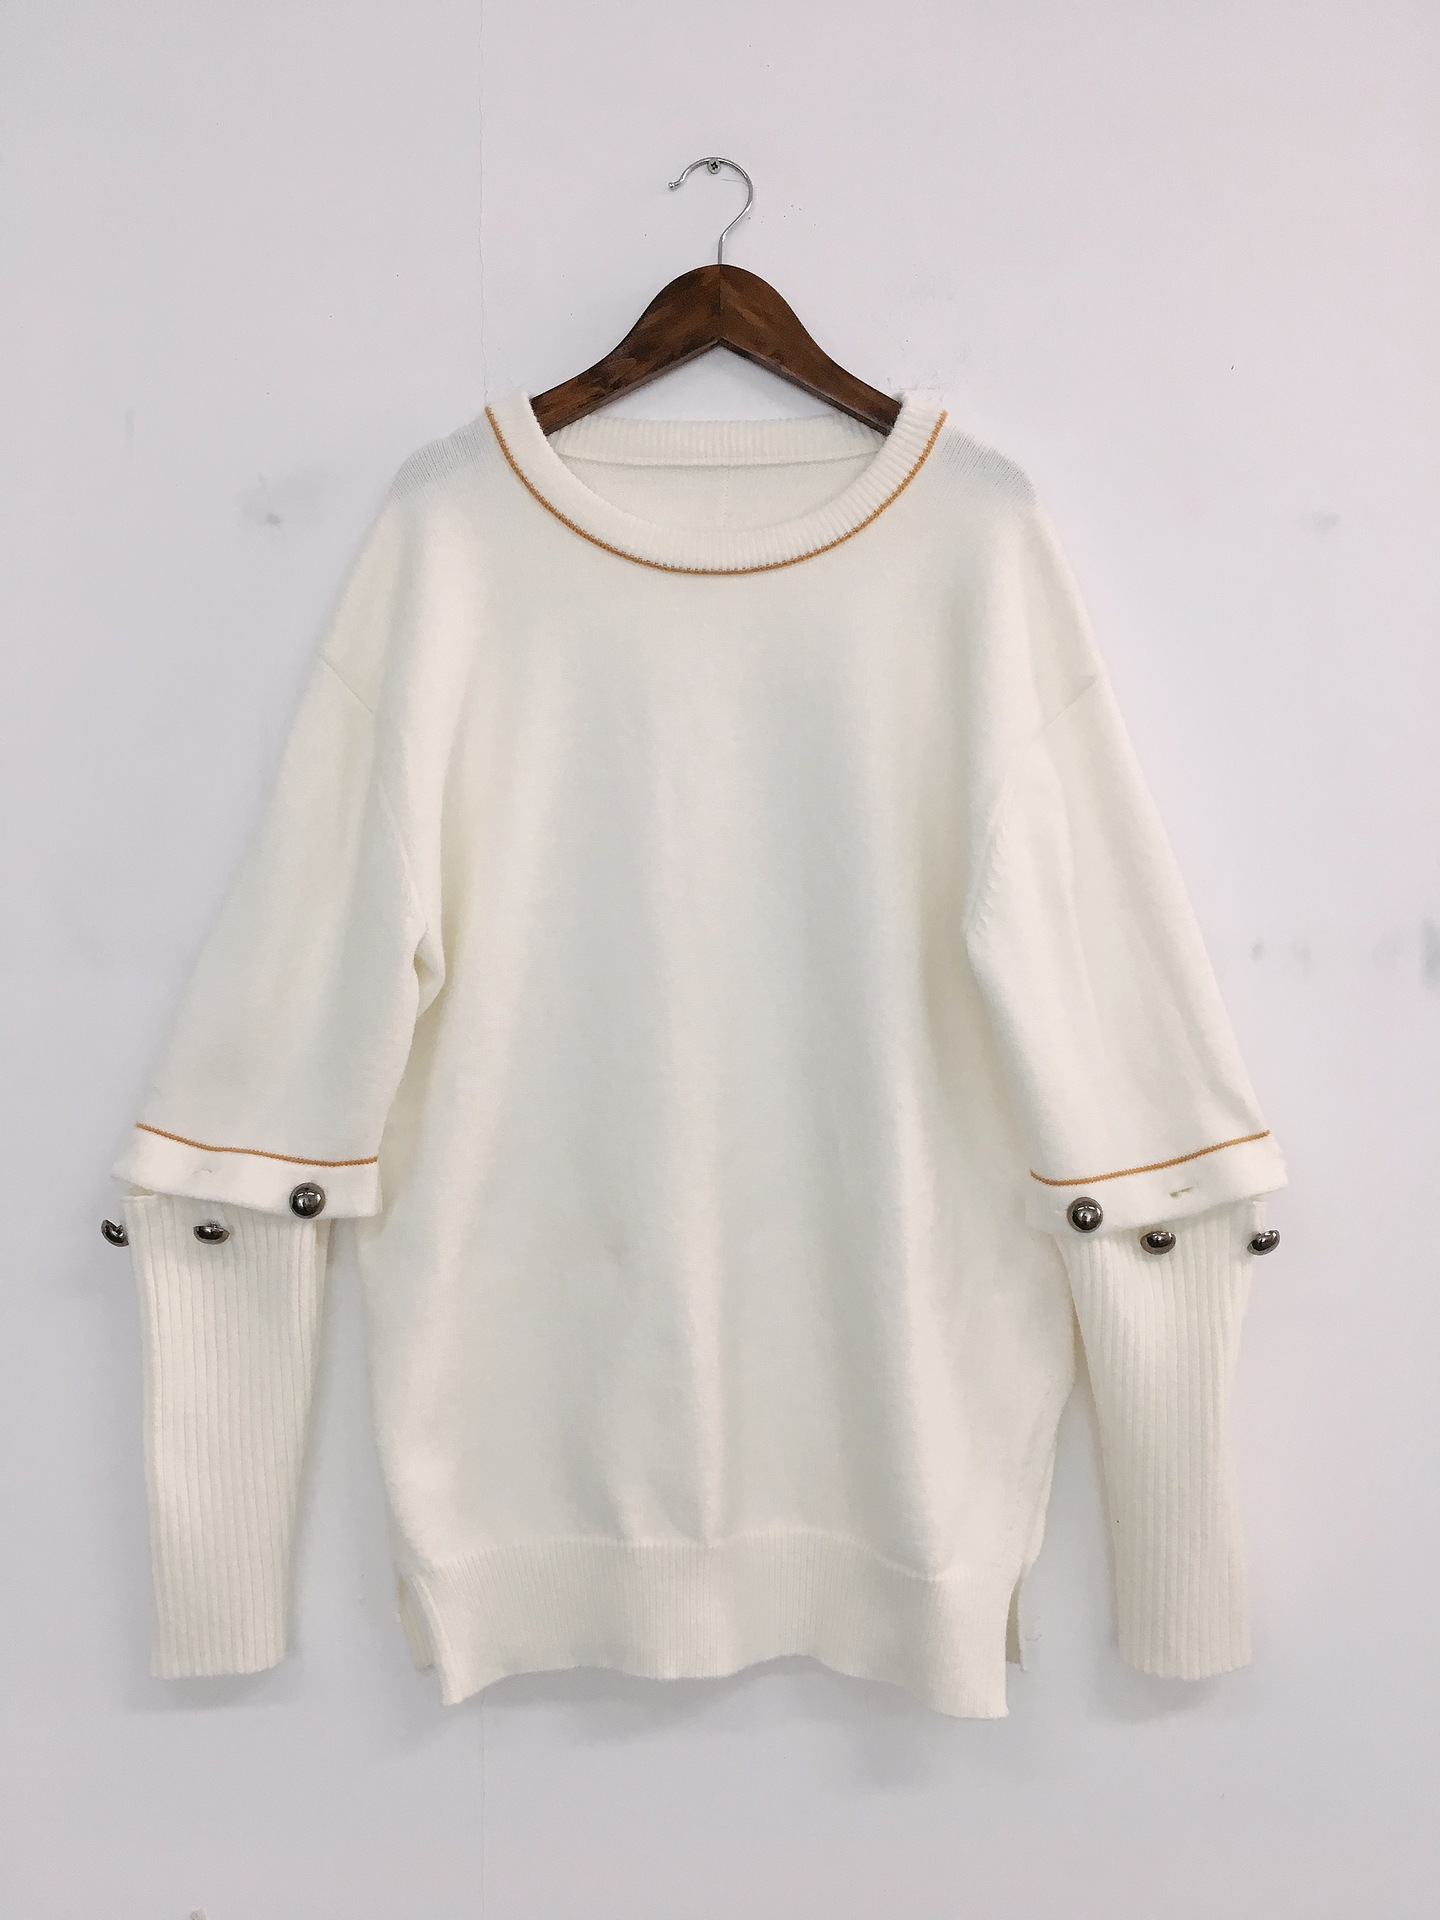 2019 Autumn New Star The Same Round Collar White Open fork Sweater Women Lazy style Fashion Sweater Women Sweaters in Pullovers from Women 39 s Clothing